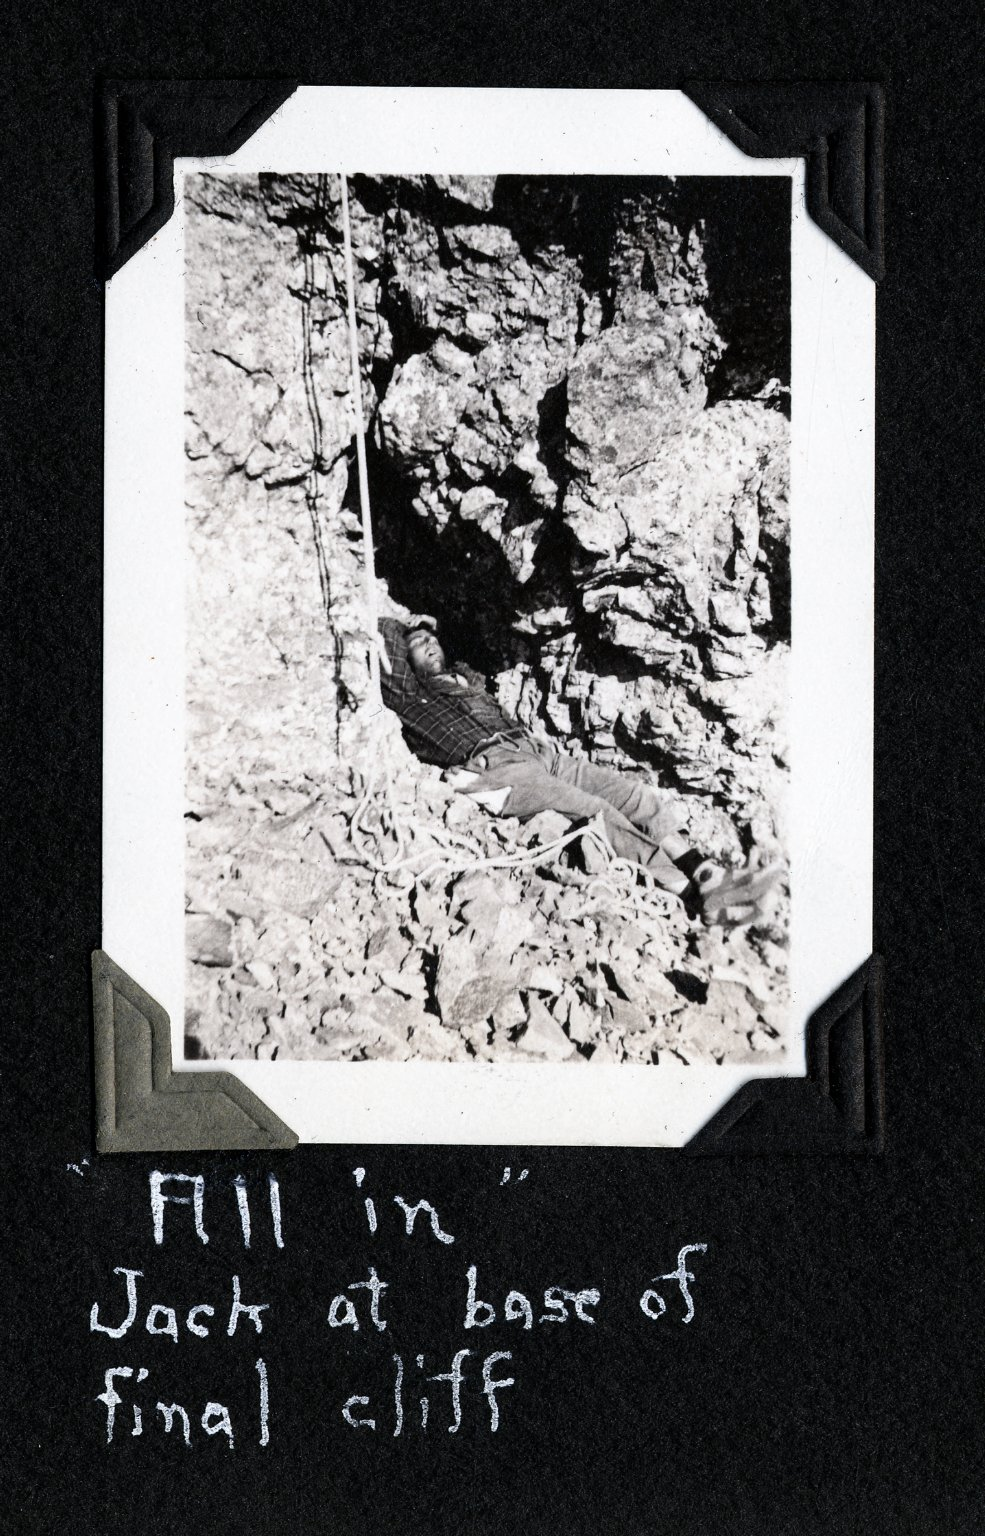 """Fill in"" Jack at Base of Final Cliff"